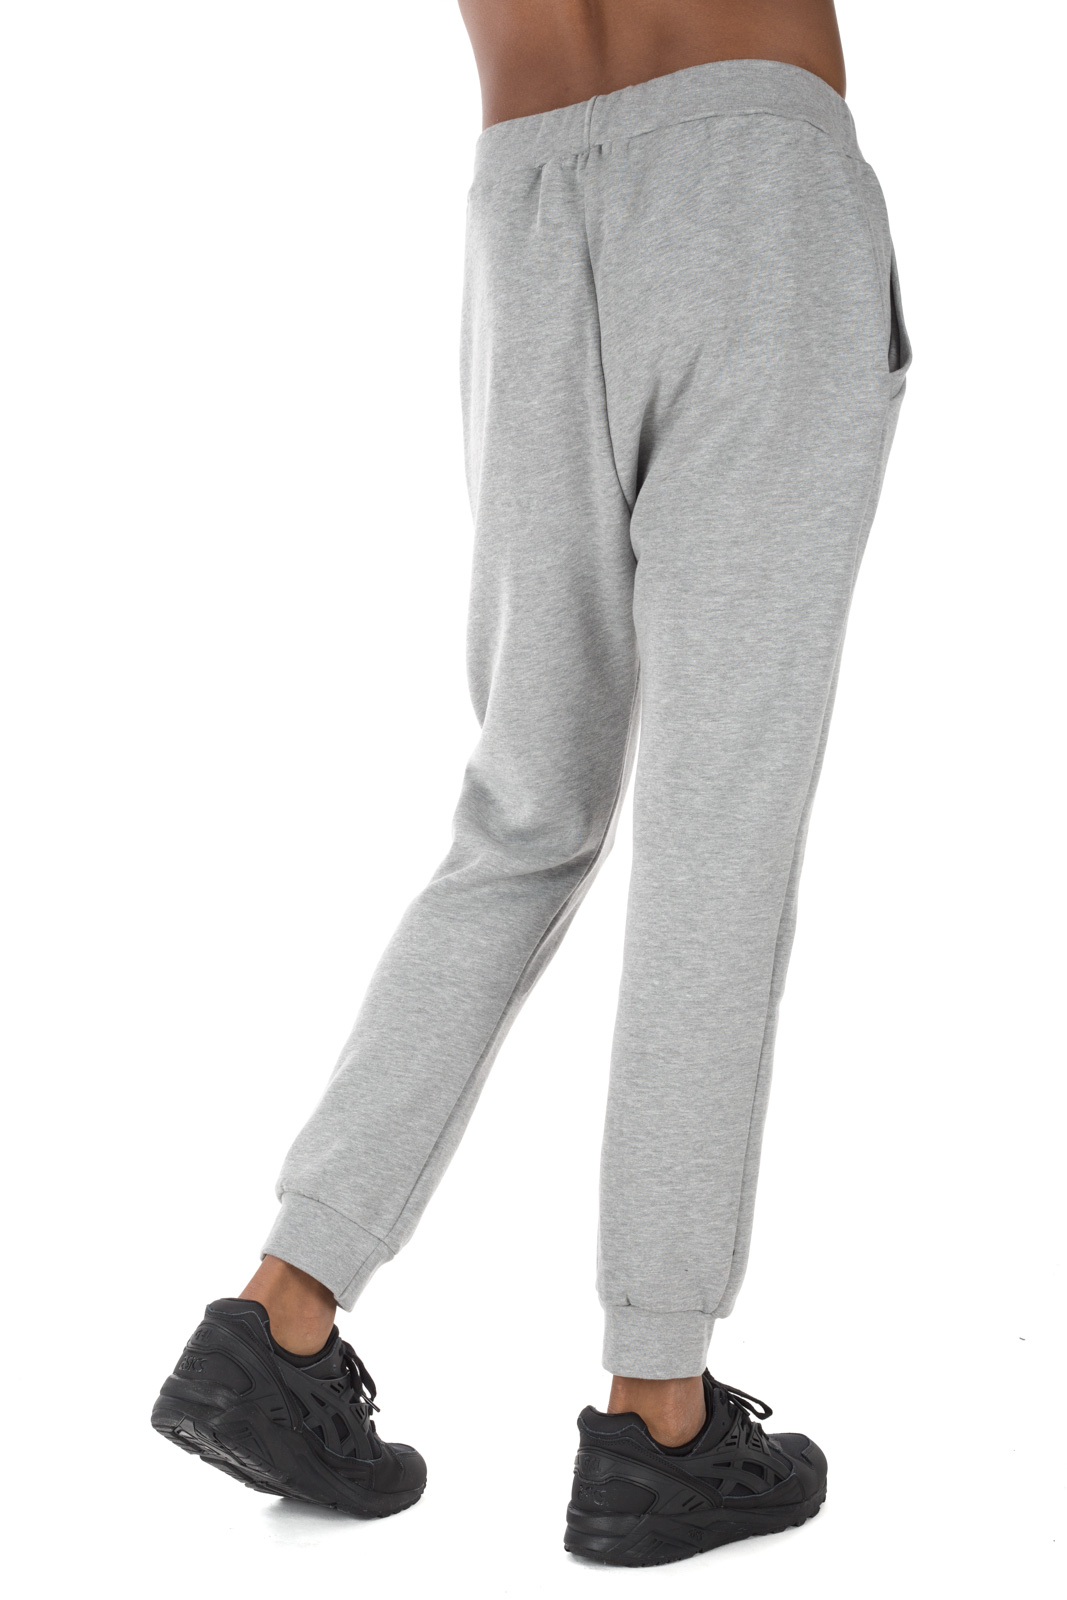 Pyrex - Unisex Gray Trousers Trousers